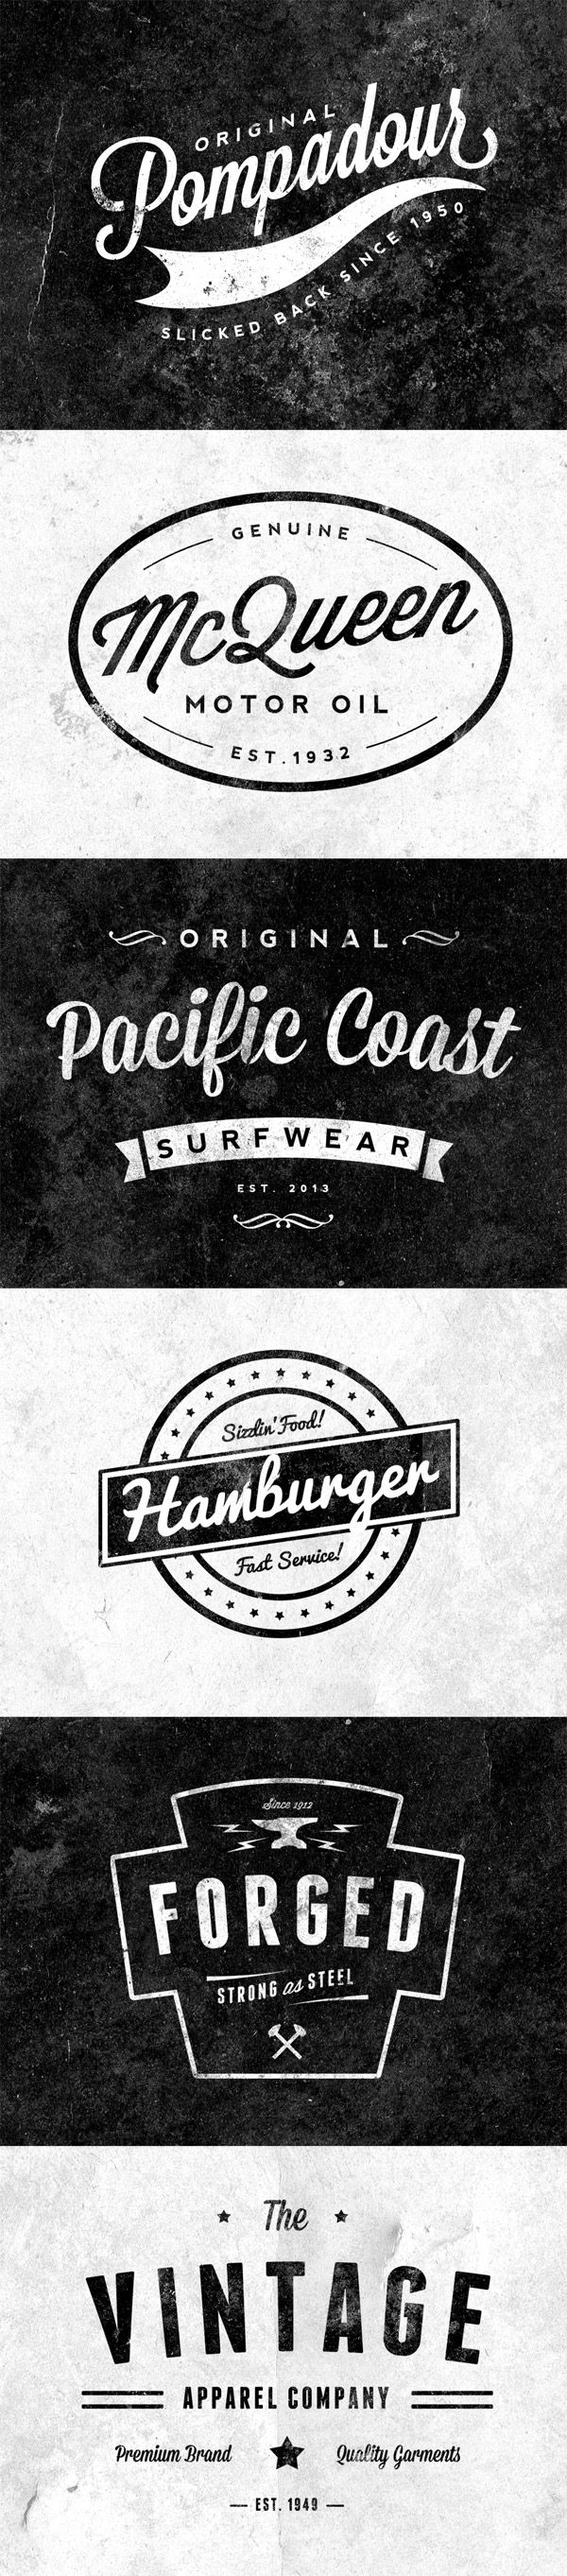 Quickly and easily create yourself a retro/vintage style logo with these 6 free customisable insignias. Open up the file, edit the text and you instantly have a trendy emblem for some fun branding or cool apparel merchandise. Every one of these logos/emblems has been constructed in Photoshop to allow for full customisation. All the text …